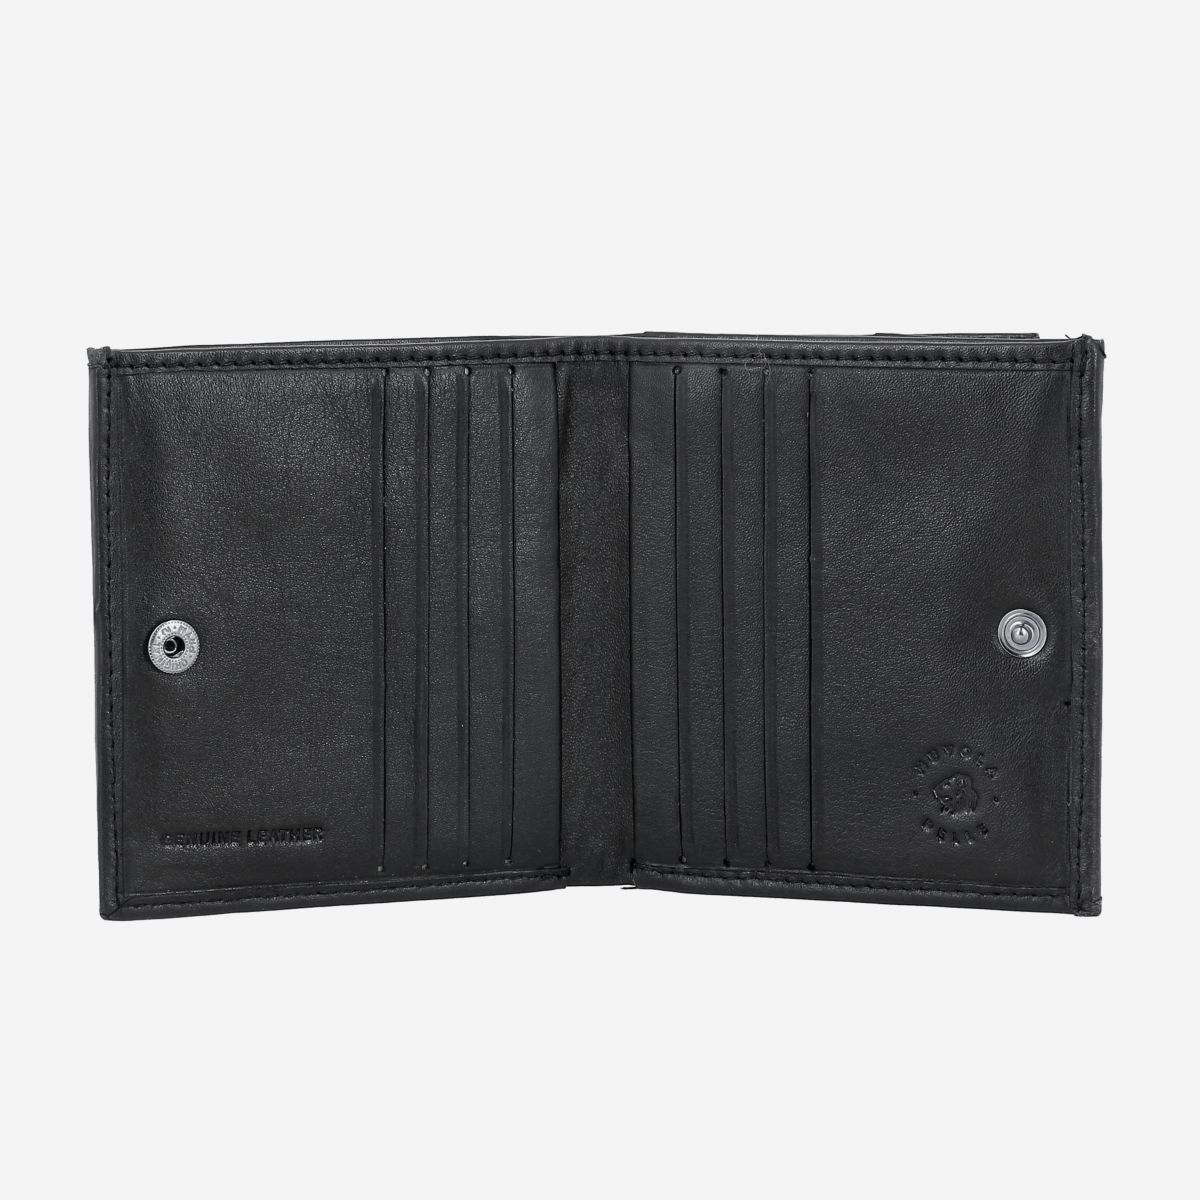 NUVOLA PELLE Small Unique Leather Wallet  - Black